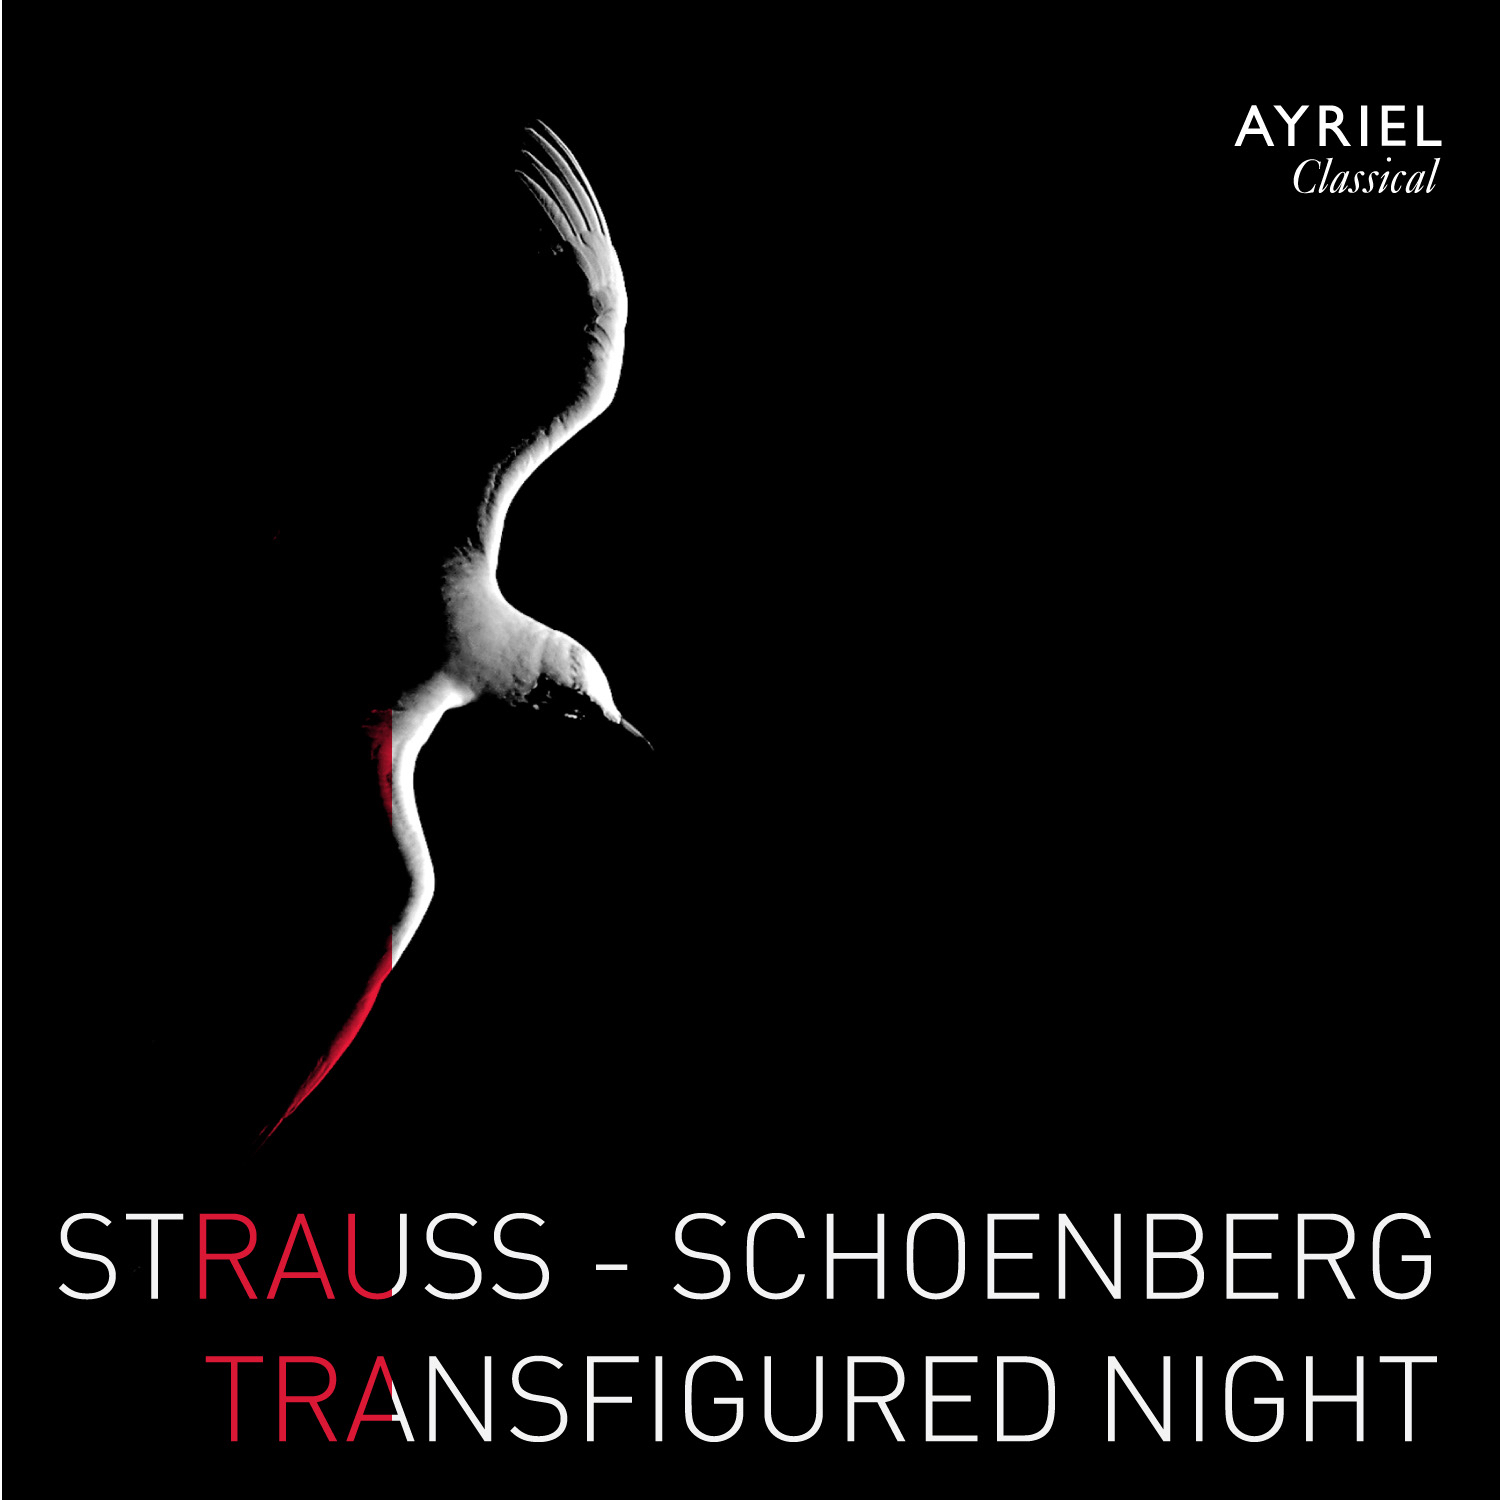 strauss-schoenberg-transfigured-night.jpg